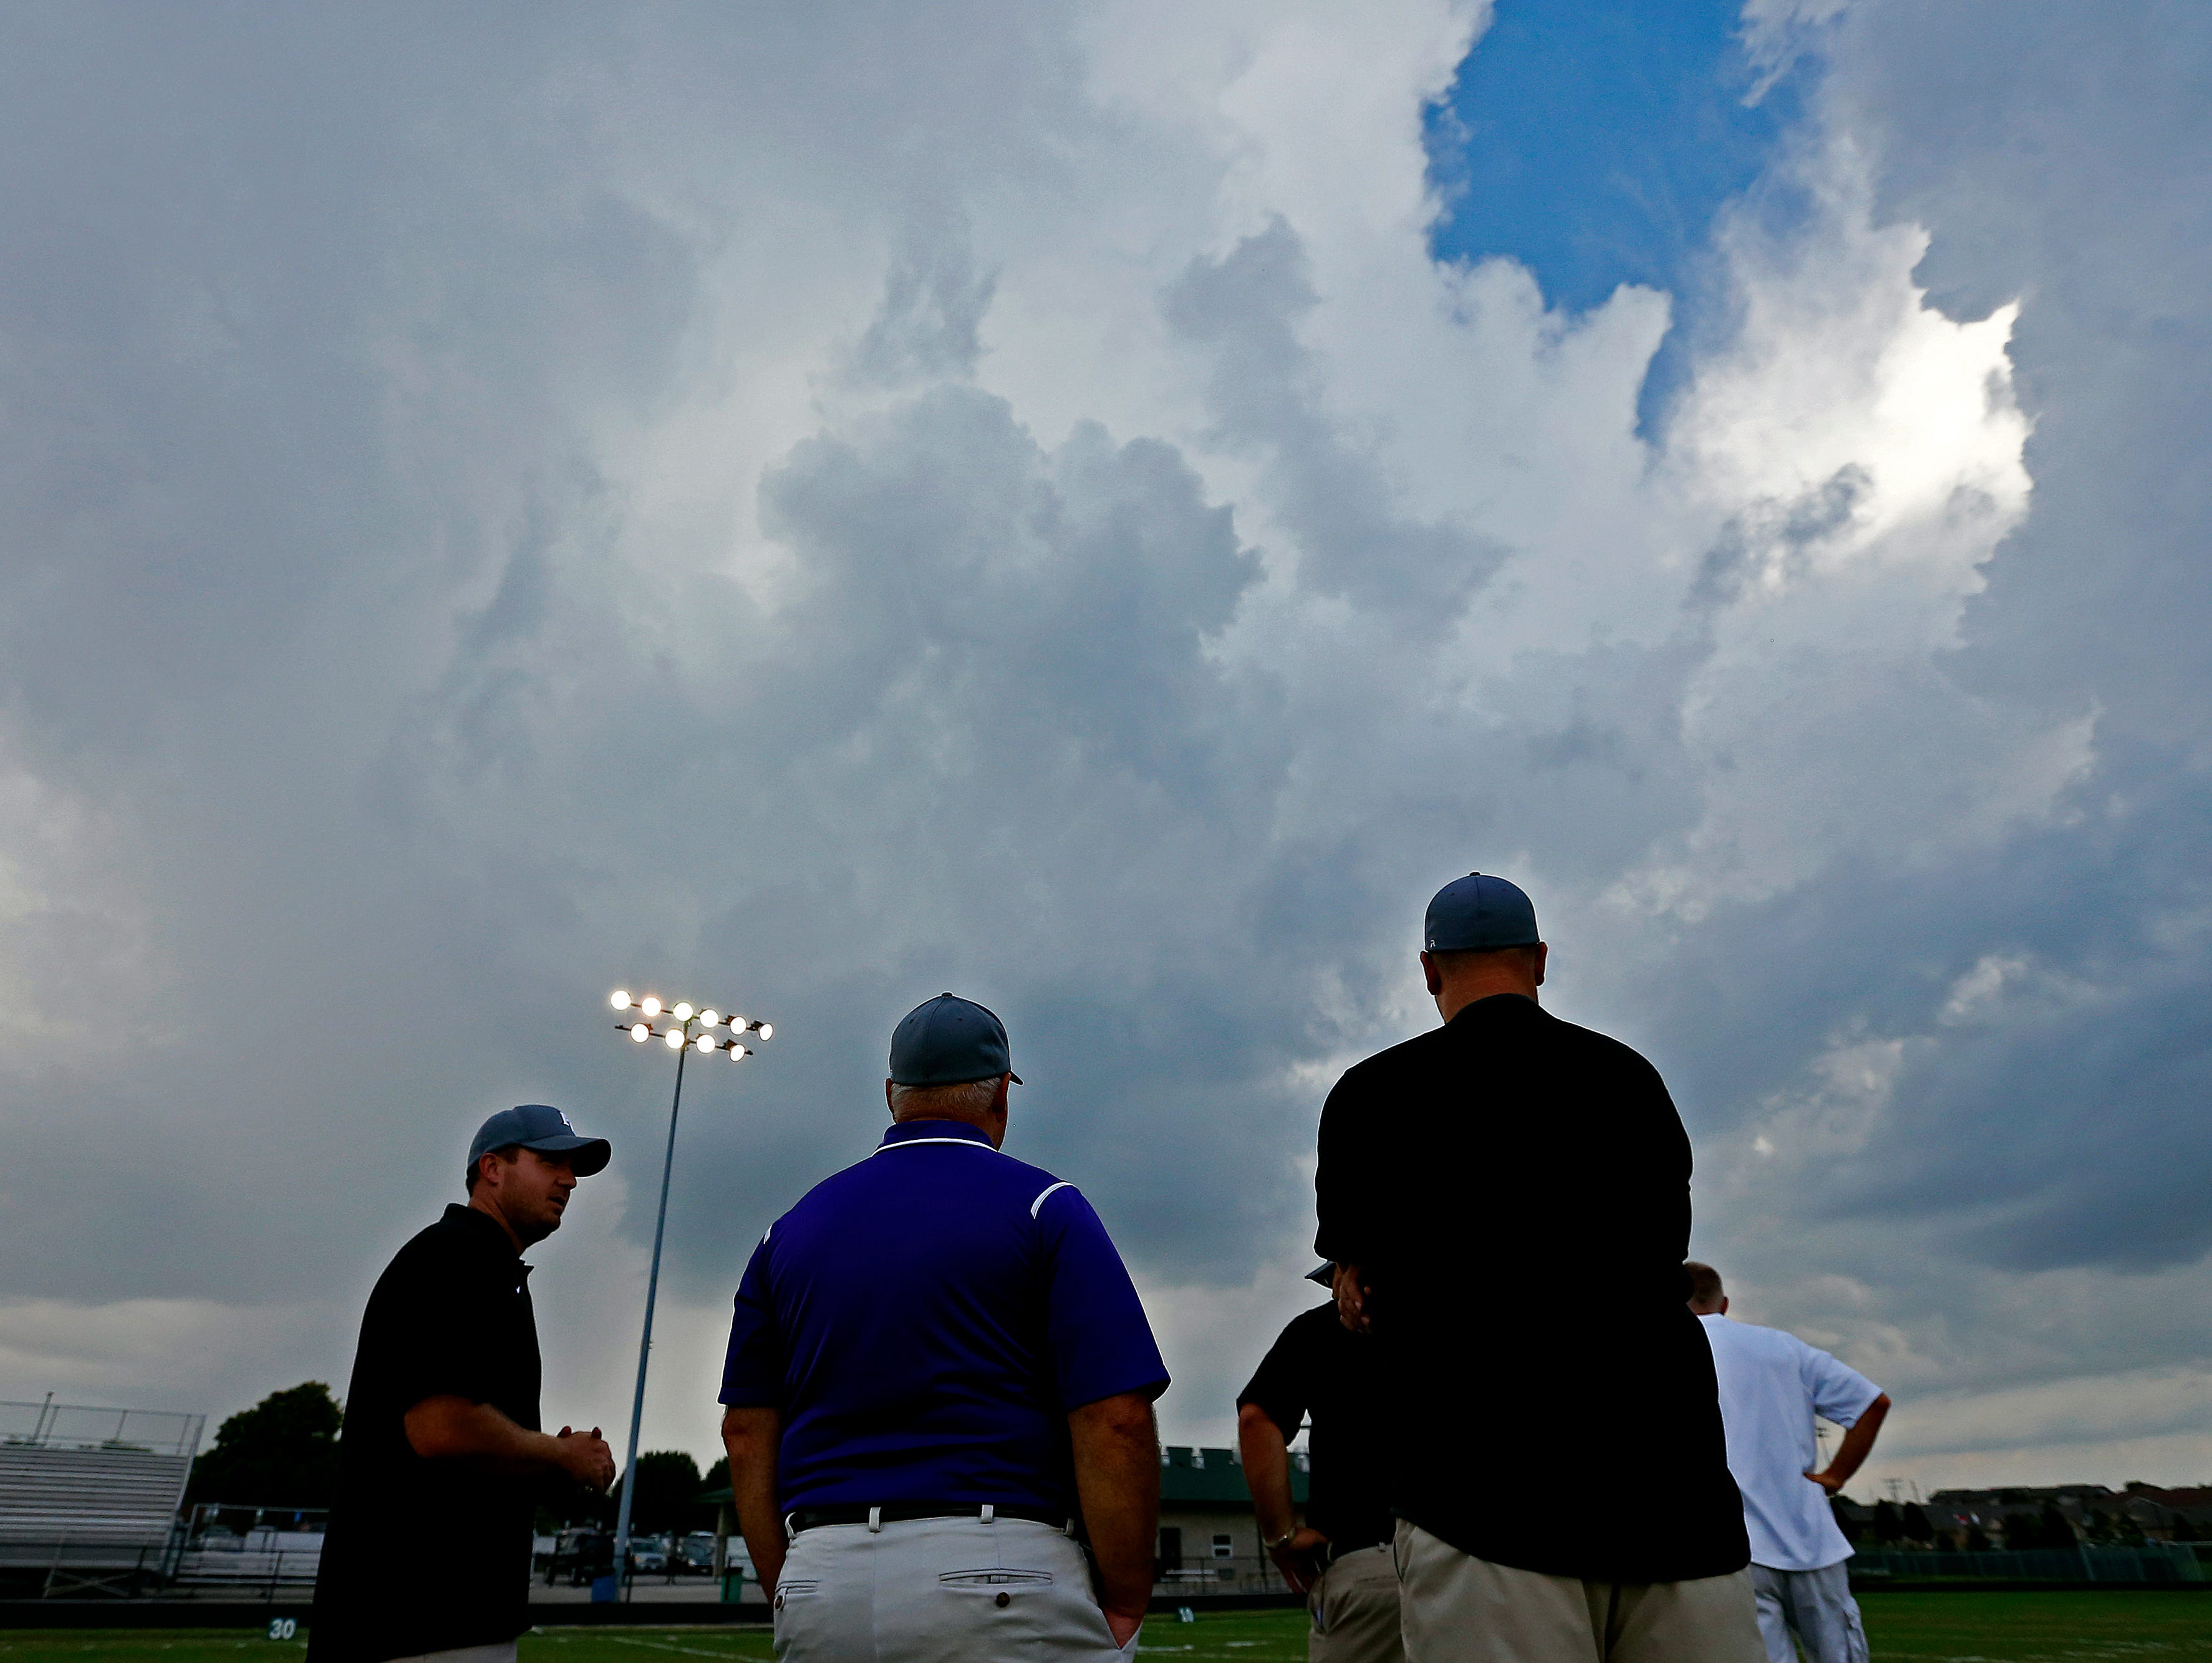 Fair Grove High School coaching staff watches clouds on the horizon before a scheduled game between Springfield Catholic High School and Fair Grove High School at Springfield Catholic High School in Springfield, Mo. on Sept. 9, 2016. The game was postponed due to severe weather in the area.